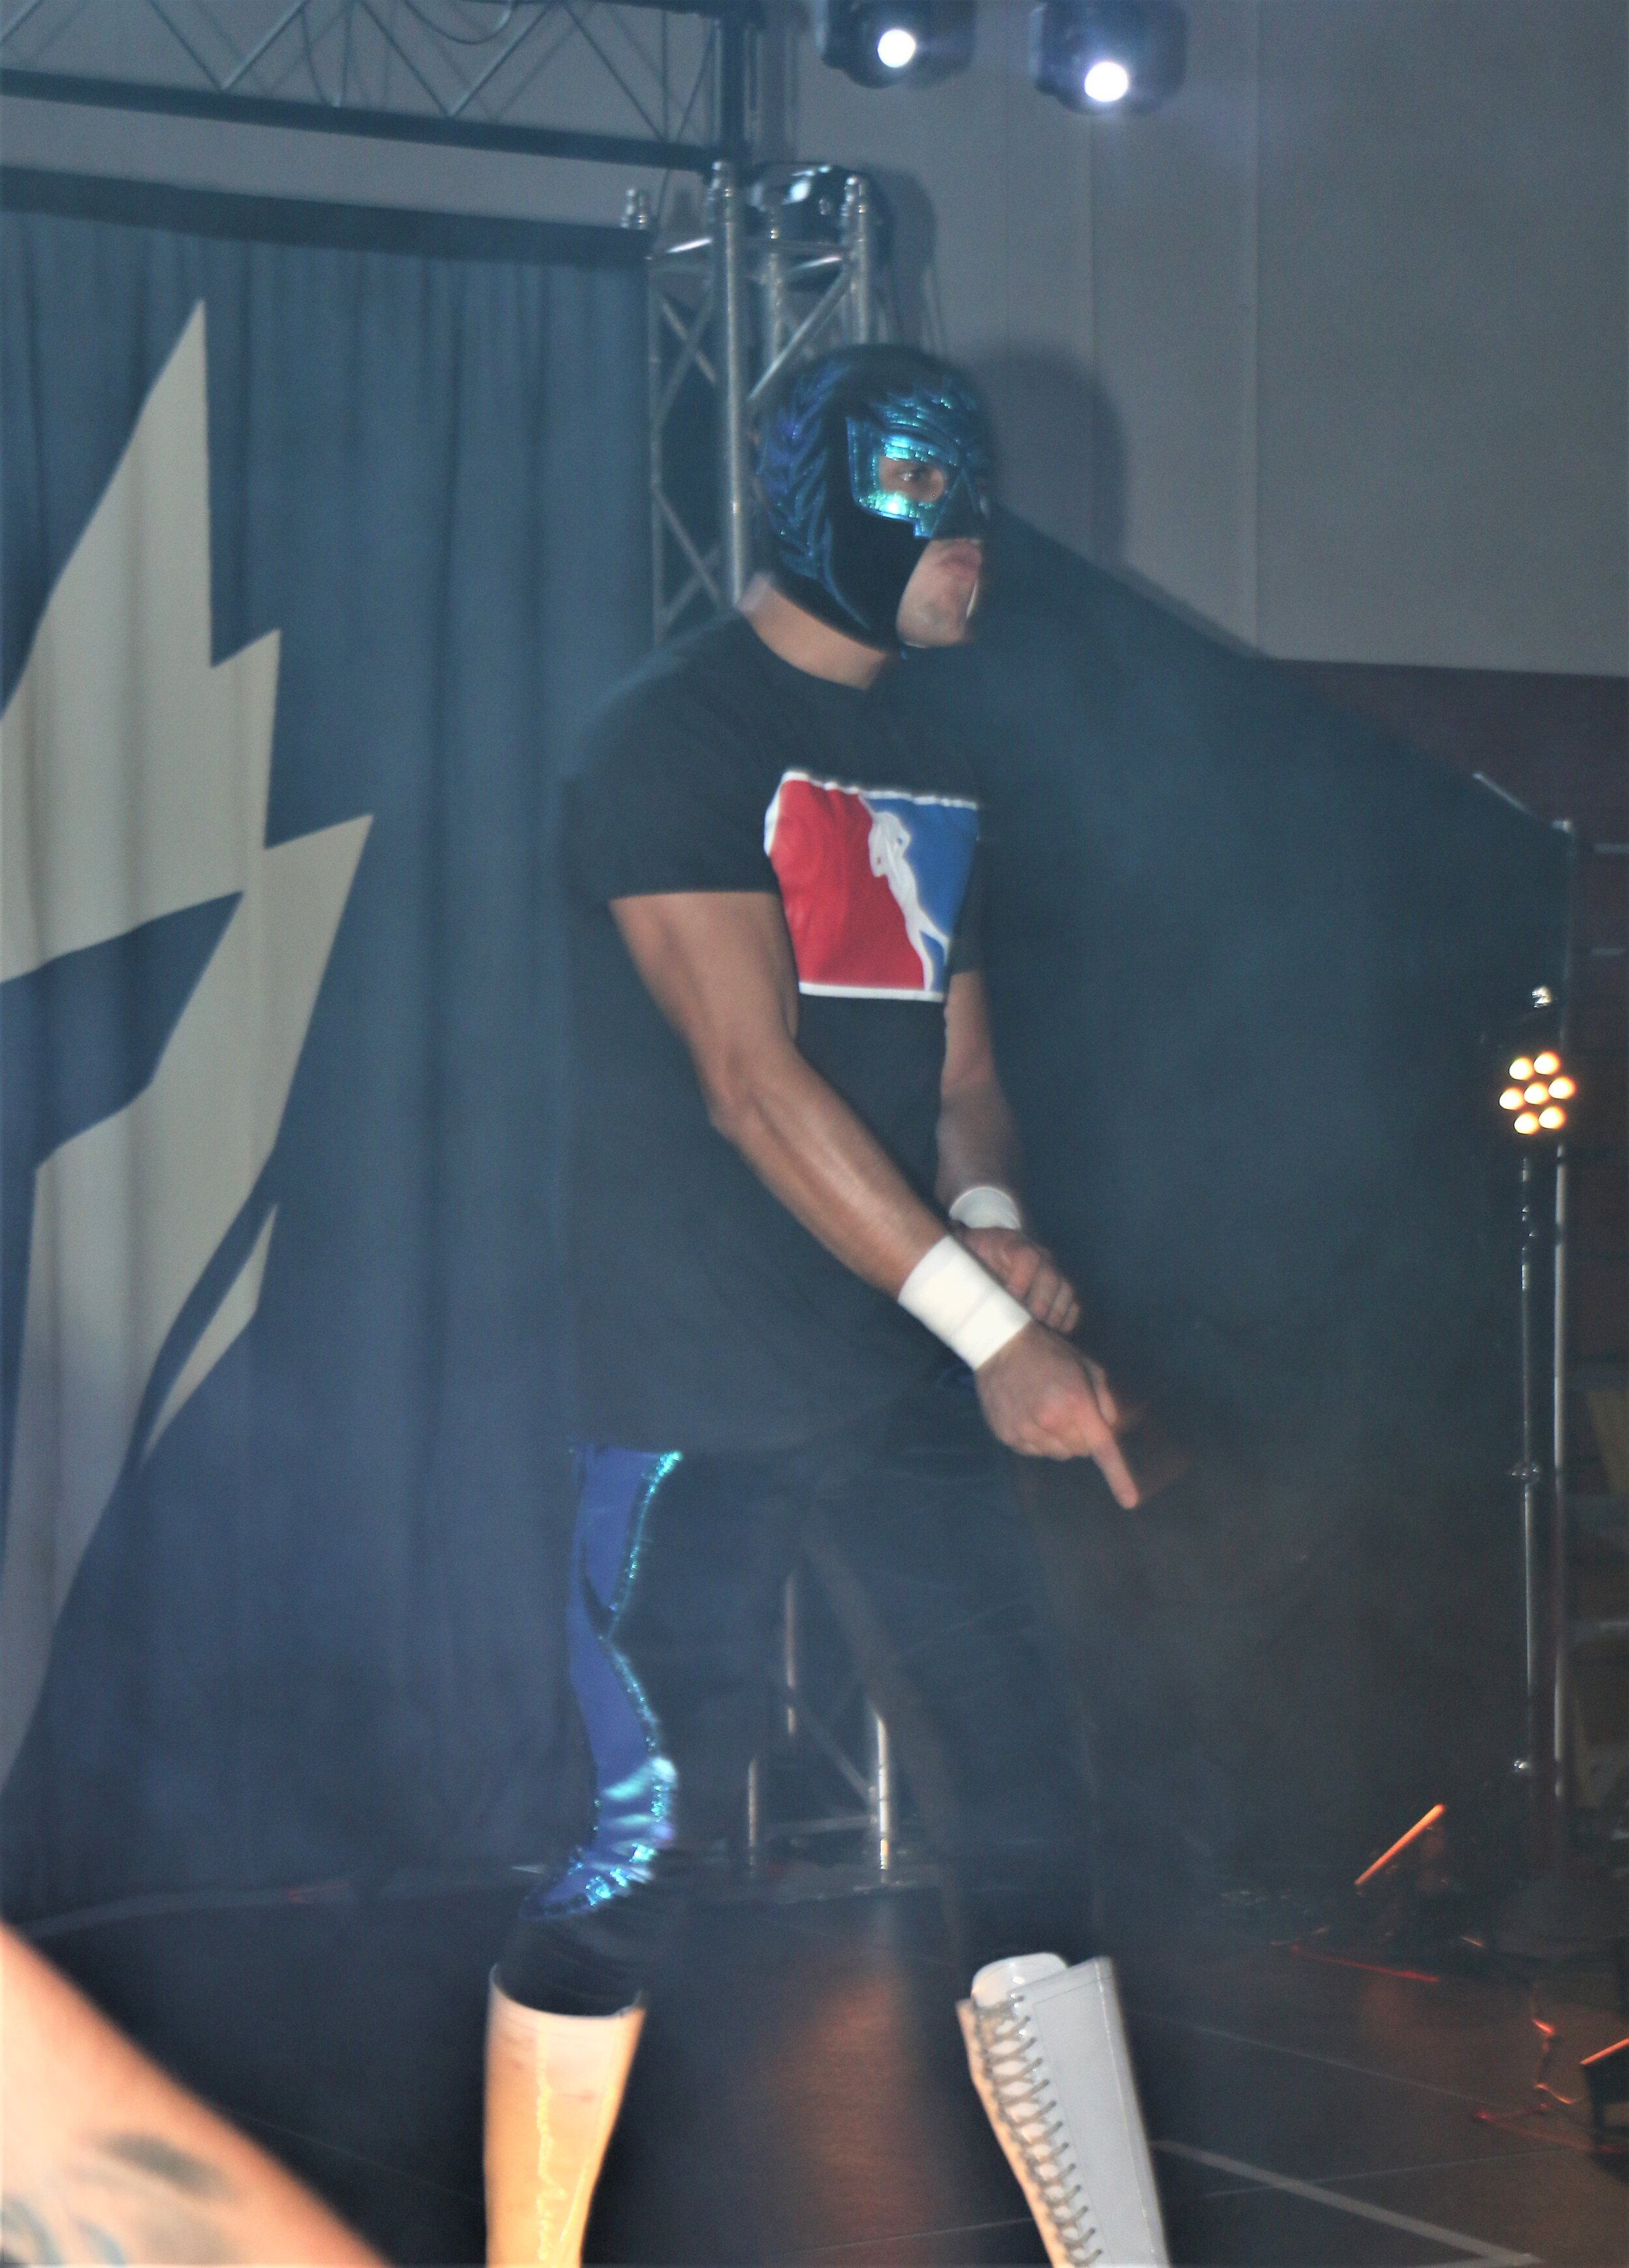 Sobreano Jr. enters the arena for his match against Templario.